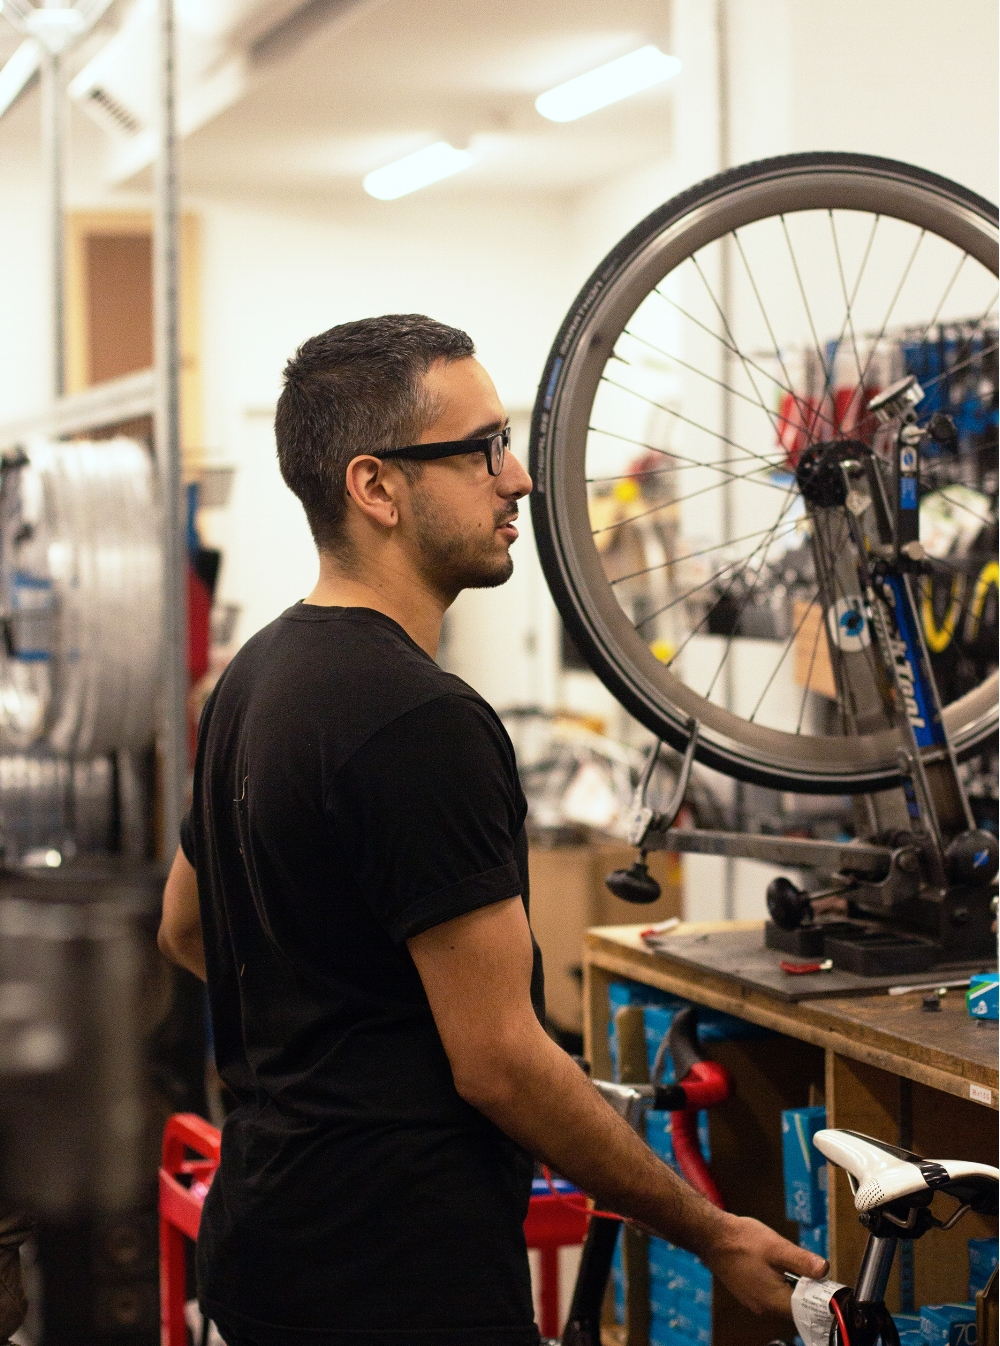 service shop - We provide professional tune-ups and repairs in our service shop. All profits raised by the Bike Kitchen are used to fund our programs and outreach in the community. Learn More